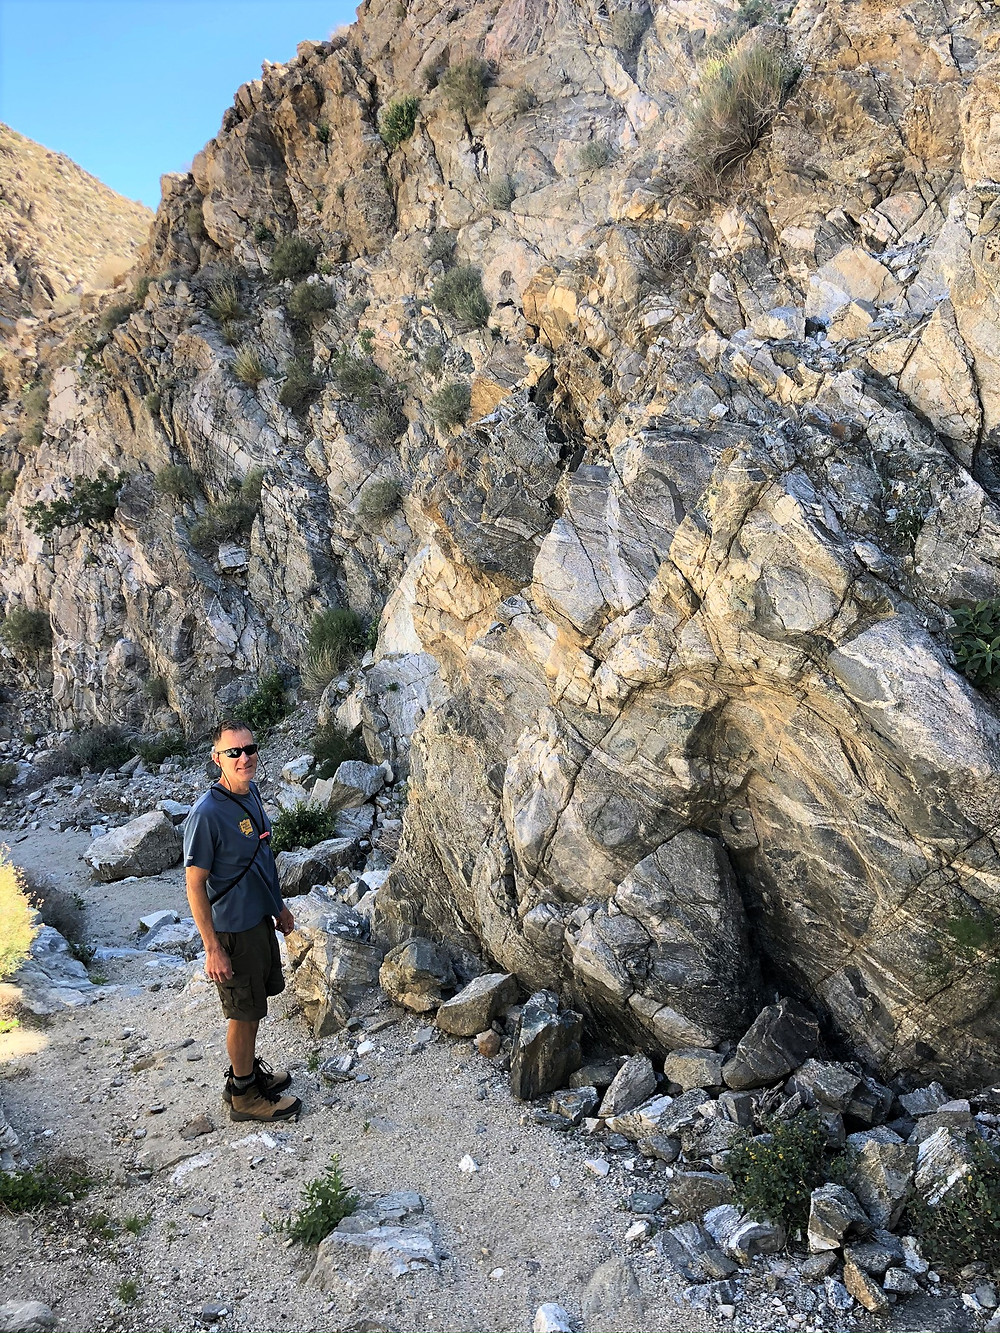 Gneiss and schist rock ledge in Swiss Canyon in Little San Bernardino mountains. San Andreas Fault Network